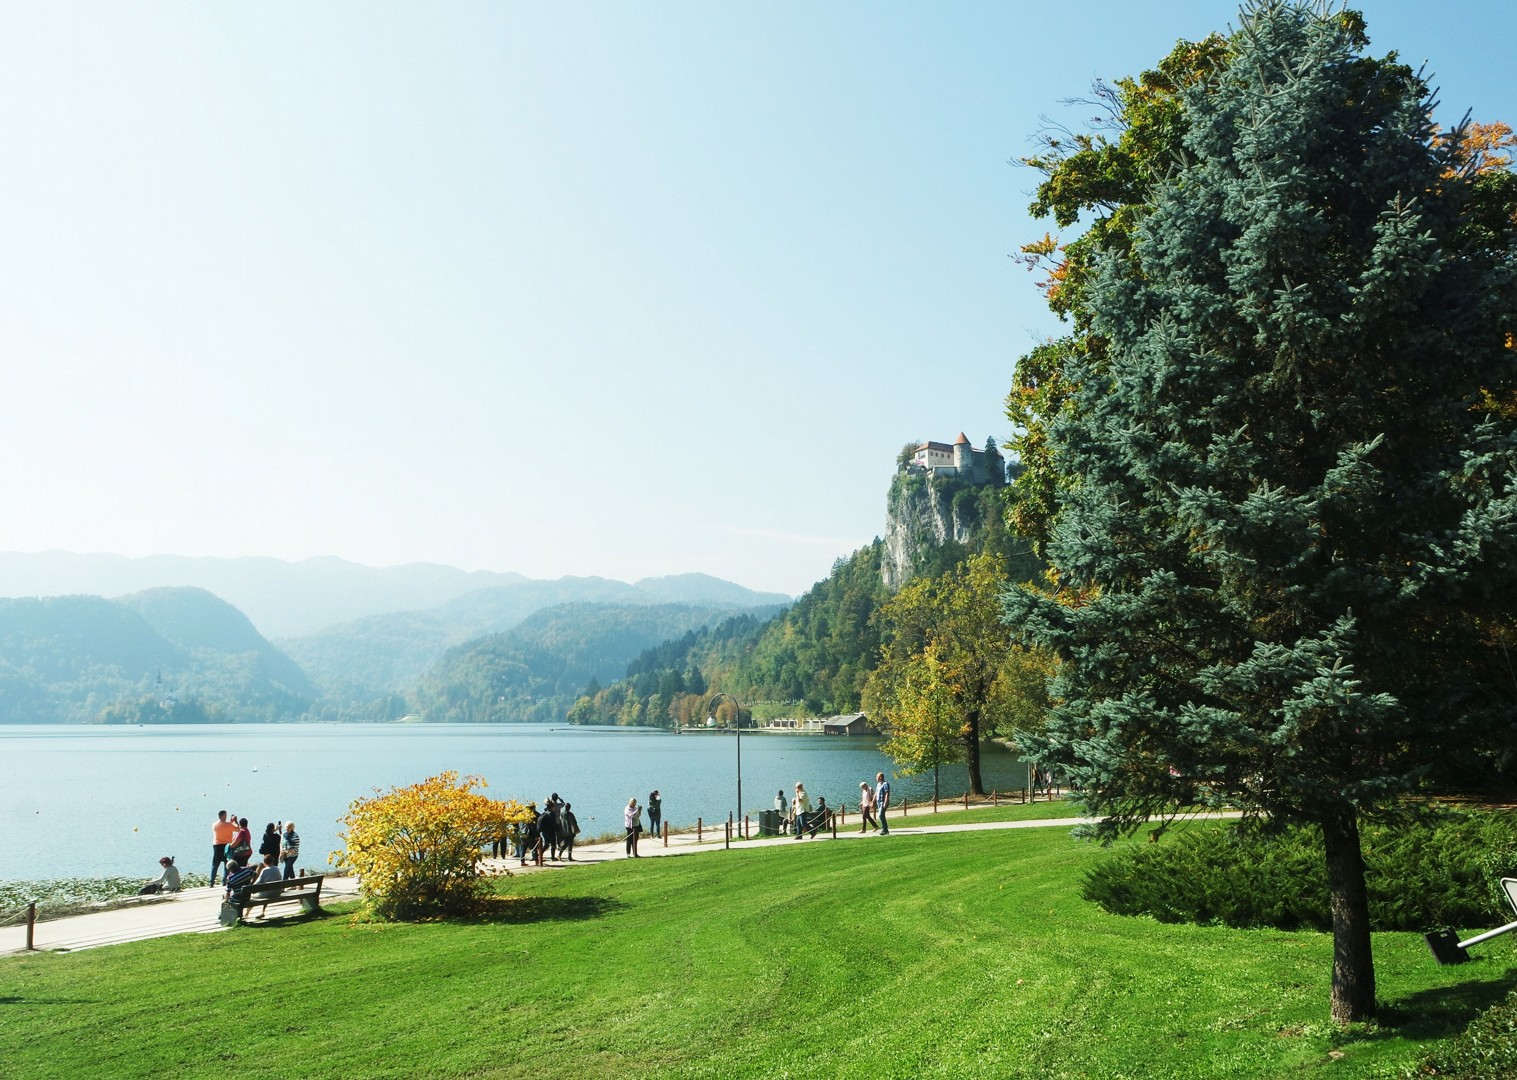 cycling-holiday-lake-bled-slovenia.JPG - Slovenia - Highlights of Lake Bled - Self-Guided Leisure Cycling Holiday - Leisure Cycling